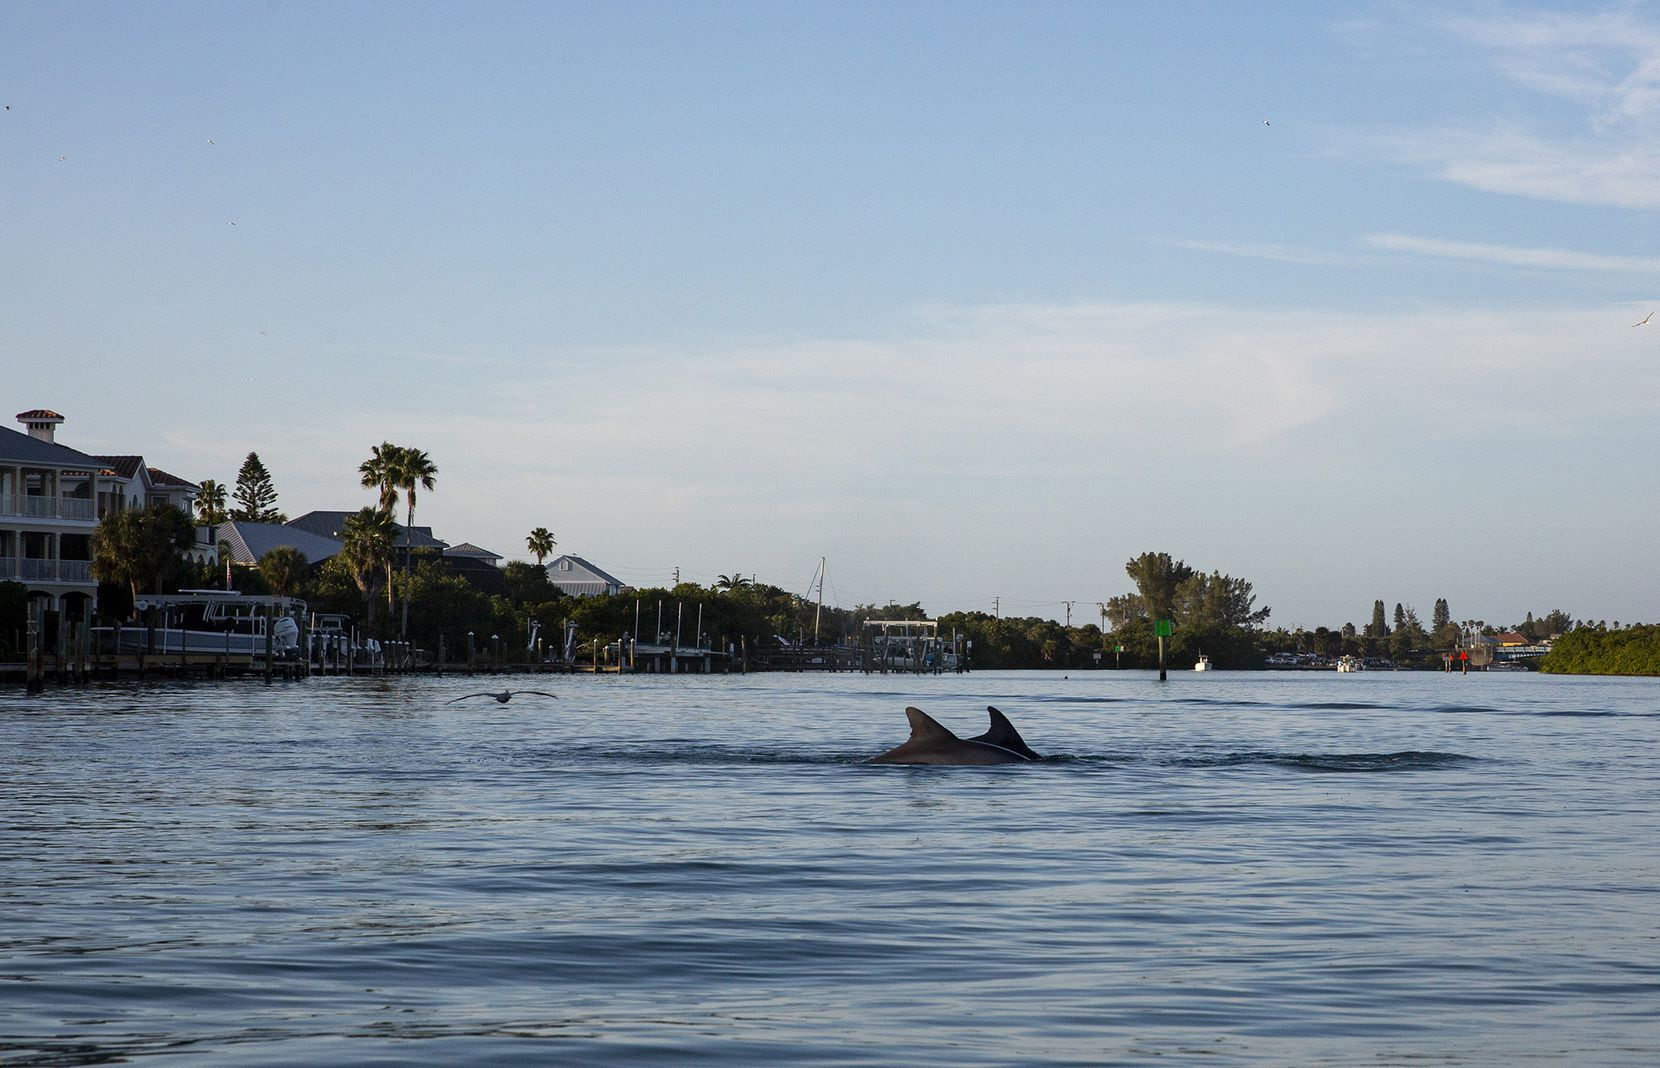 A kayak paddle in the Venice Inlet, near the city's manmade jetties, lets visitors get up close with dolphins and other aquatic wildlife.